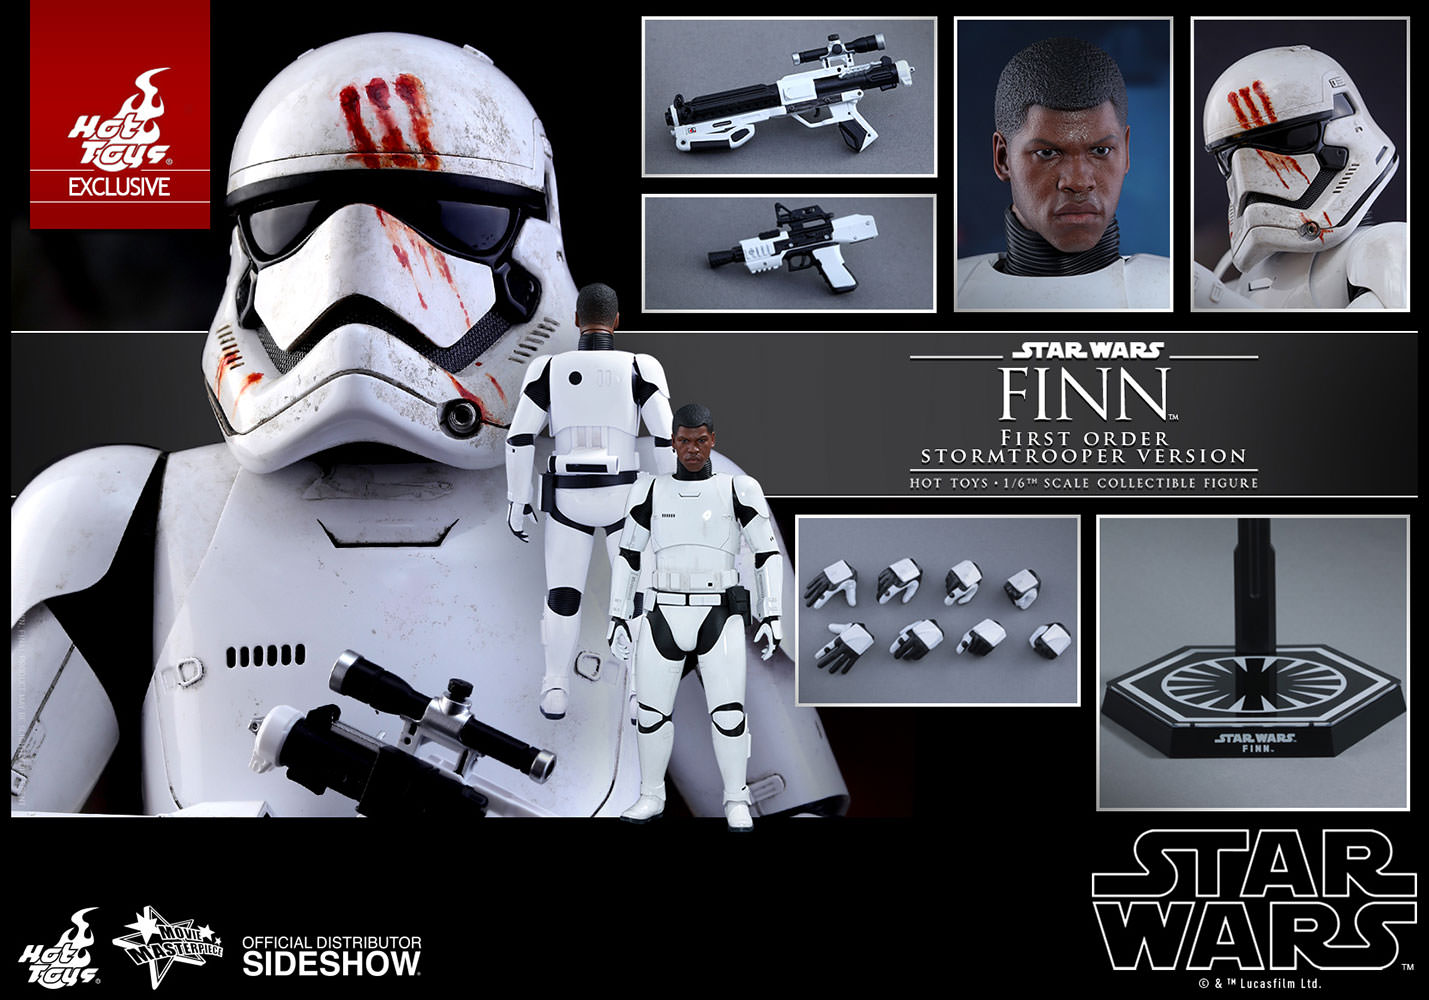 https://www.sideshowtoy.com/assets/products/902711-finn-first-order-stormtrooper-version/lg/star-wars-episode-7-finn-first-order-stormtrooper-version-sixth-scale-hot-toys-902711-15.jpg